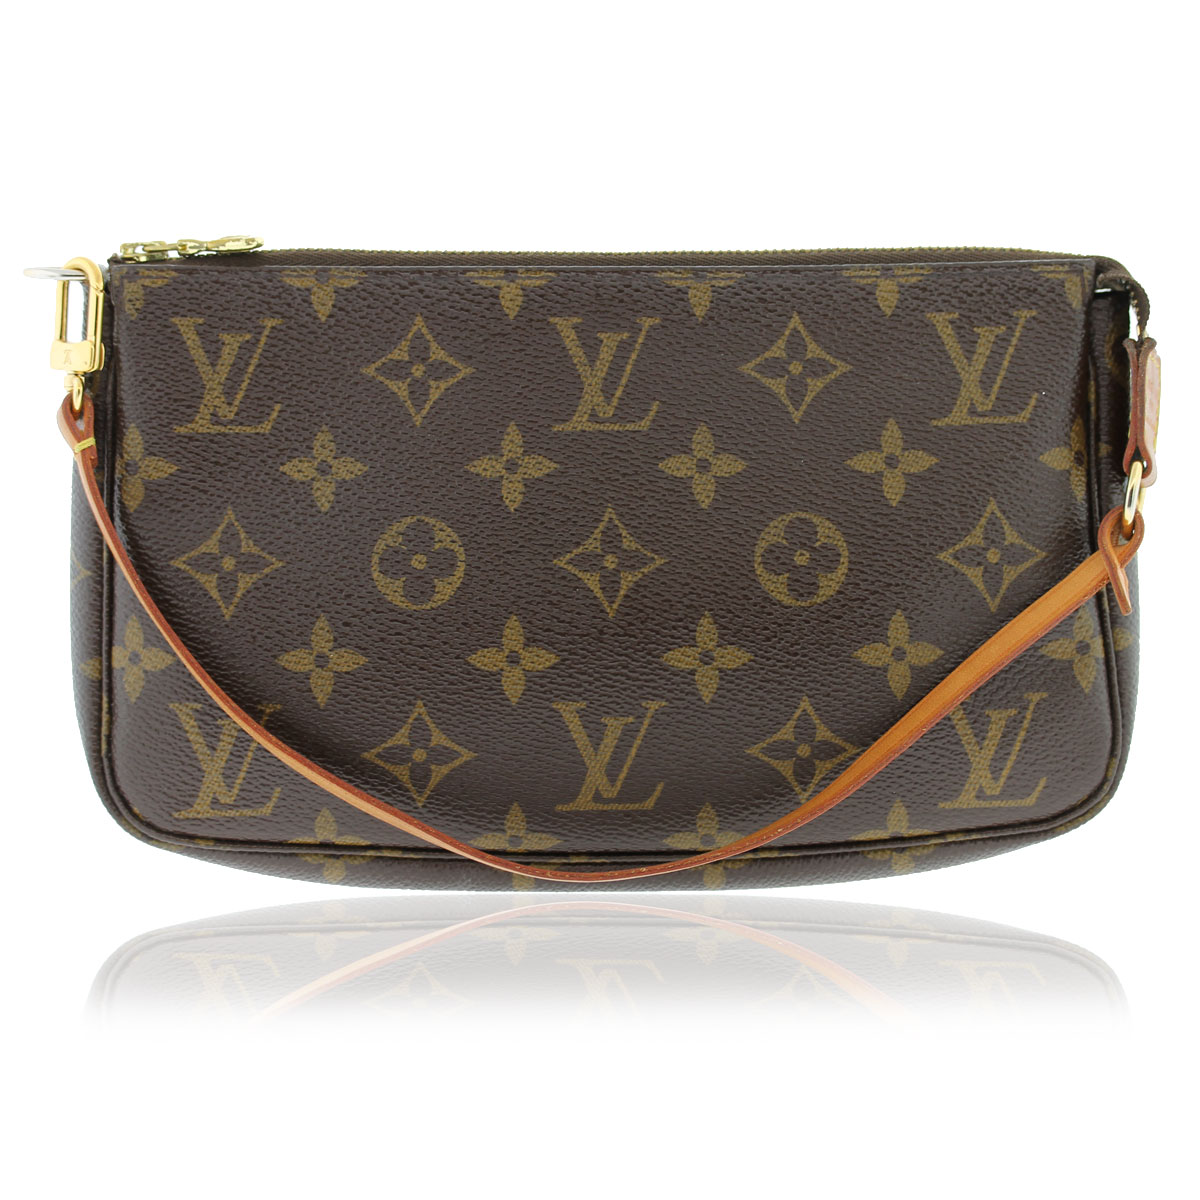 Lv Bag Handle Cover